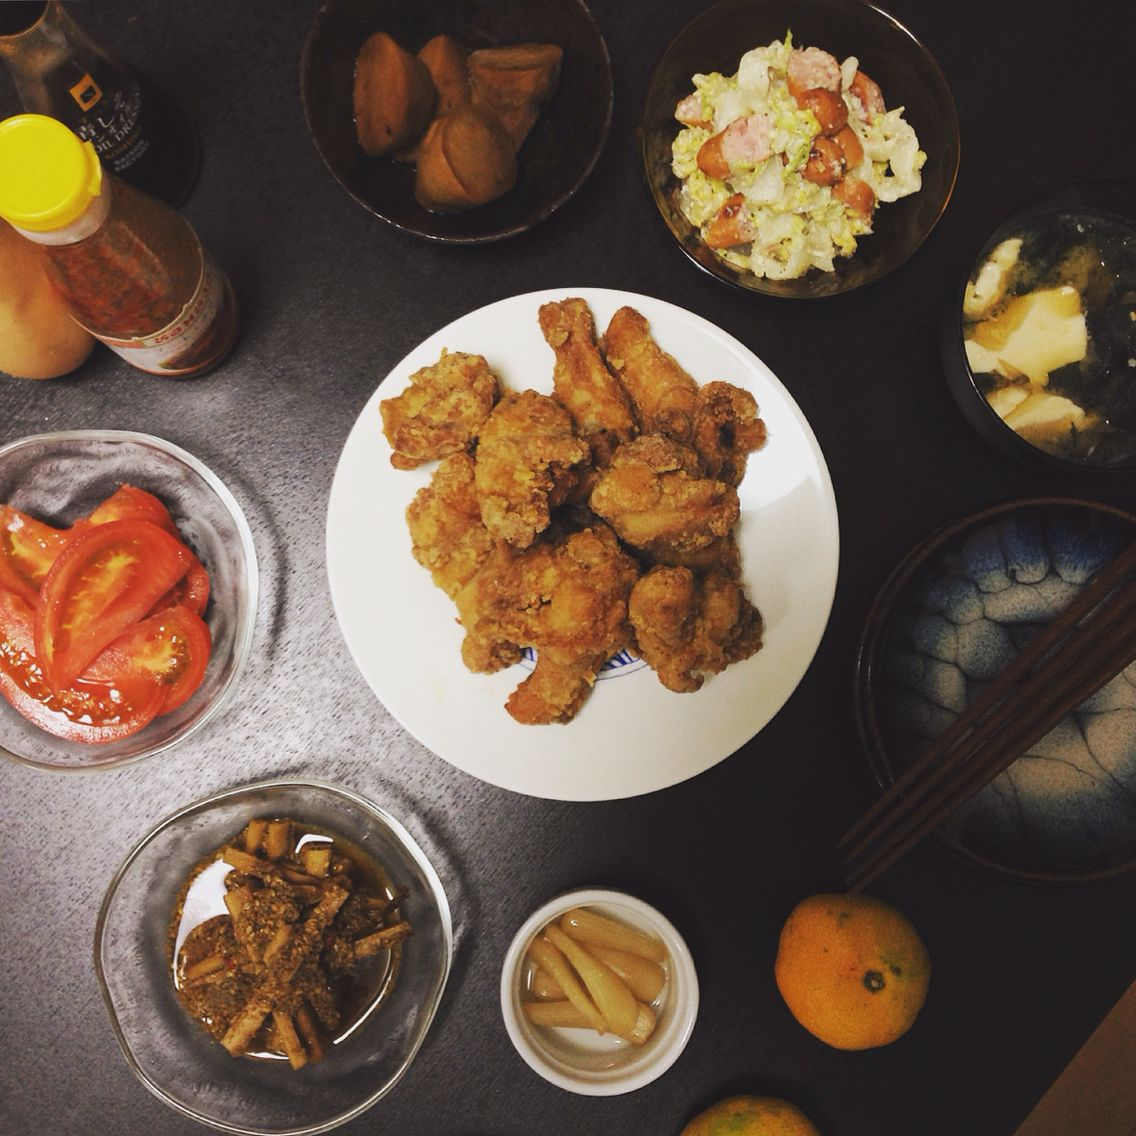 【Around midnight】dinner. japanese fried chicken(drumstick and legs), tofu and seaweed miso soup, tomato, sausage and chinese cabbage seasoned with parmesan and milk, pickled burdock,.pickled scallion, grilled taro. 手羽元とももの唐揚げ、白菜ソーセージパルメザンミルク風味、トマト、ごぼう酢漬け、らっきょう、里芋煮、豆腐わかめ味噌汁。すぐに唐揚げが食べたくなります。#dinner #chicken #japanese